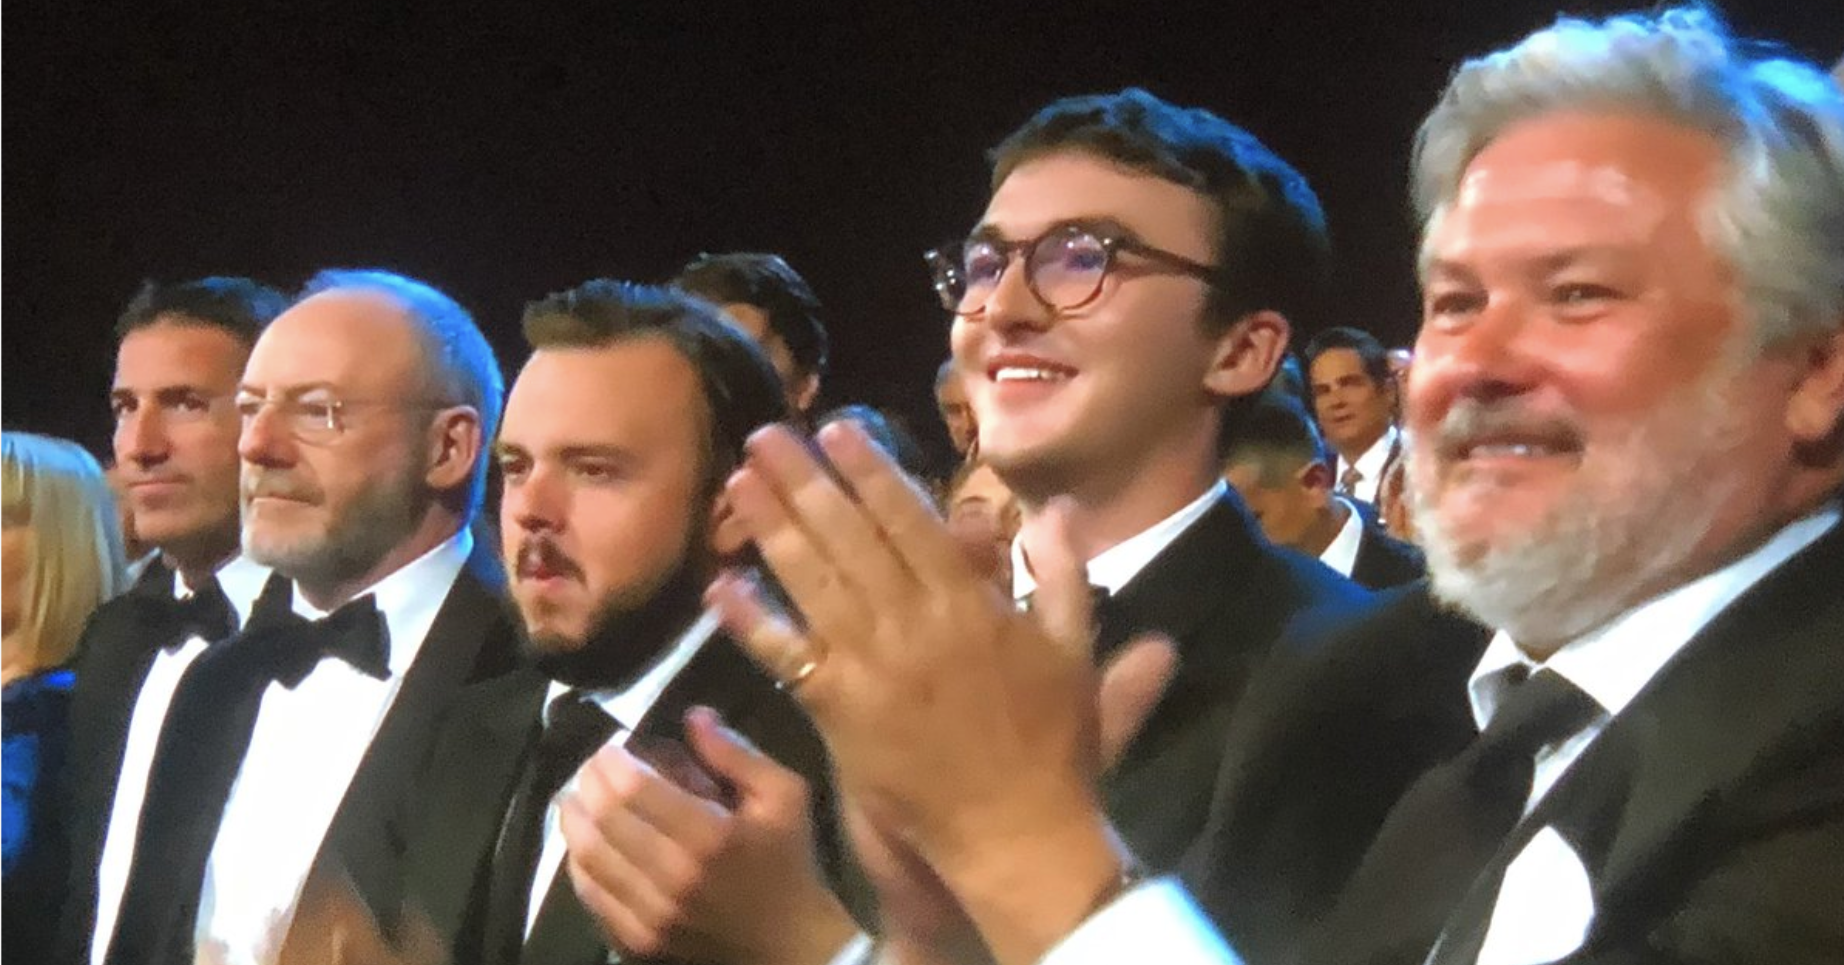 """There Was A """"Game Of Thrones"""" Tribute At The Emmys But Isaac Hempstead Wright Wasn't On Stage With Them"""